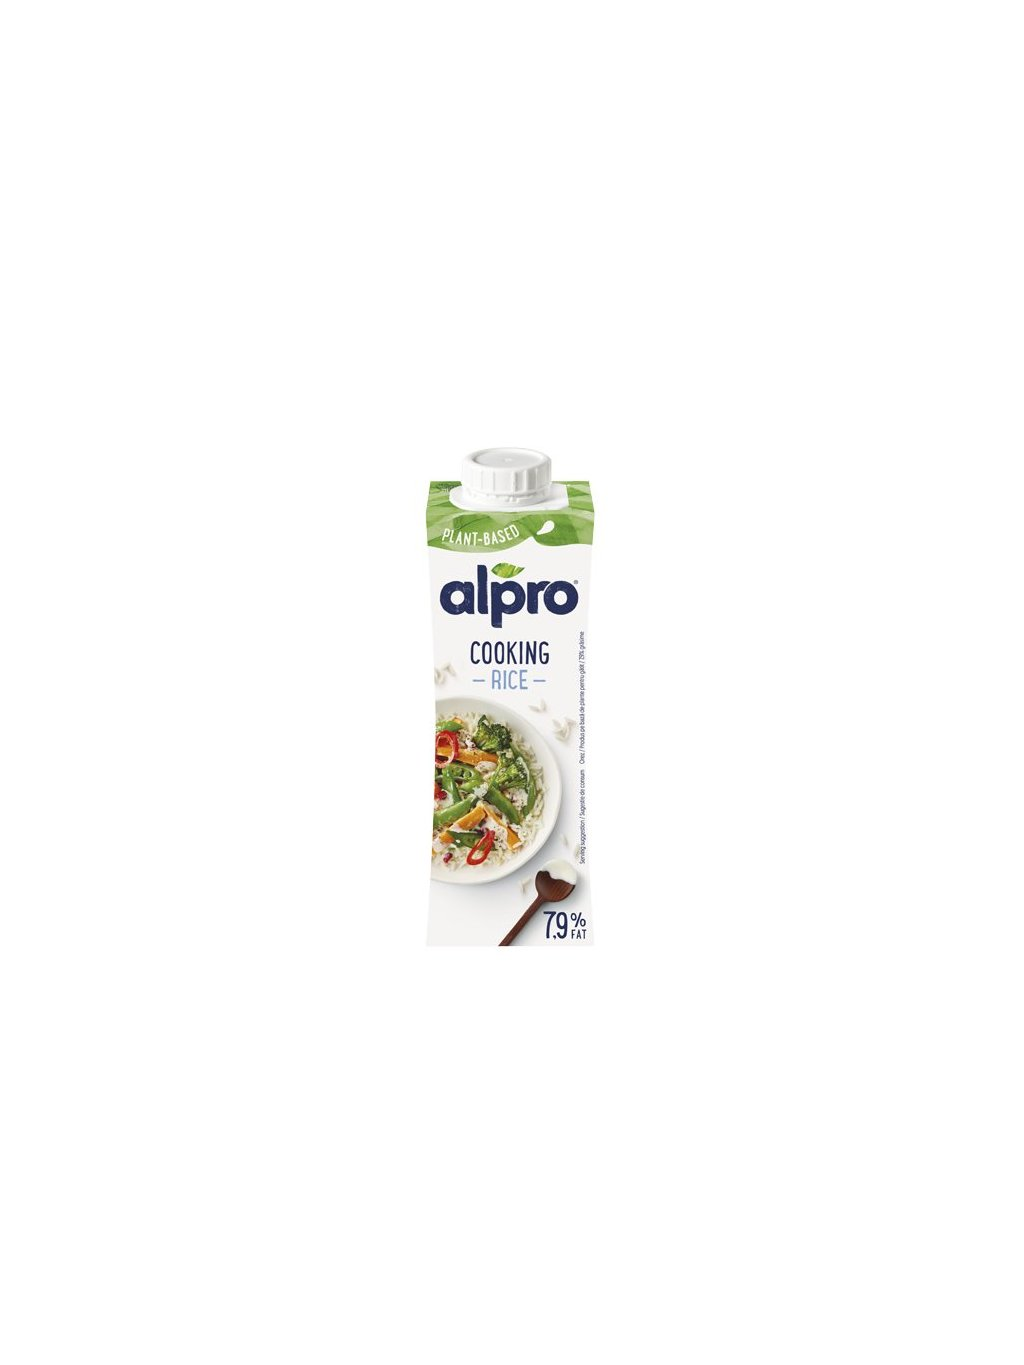 alpro rice cook green heads